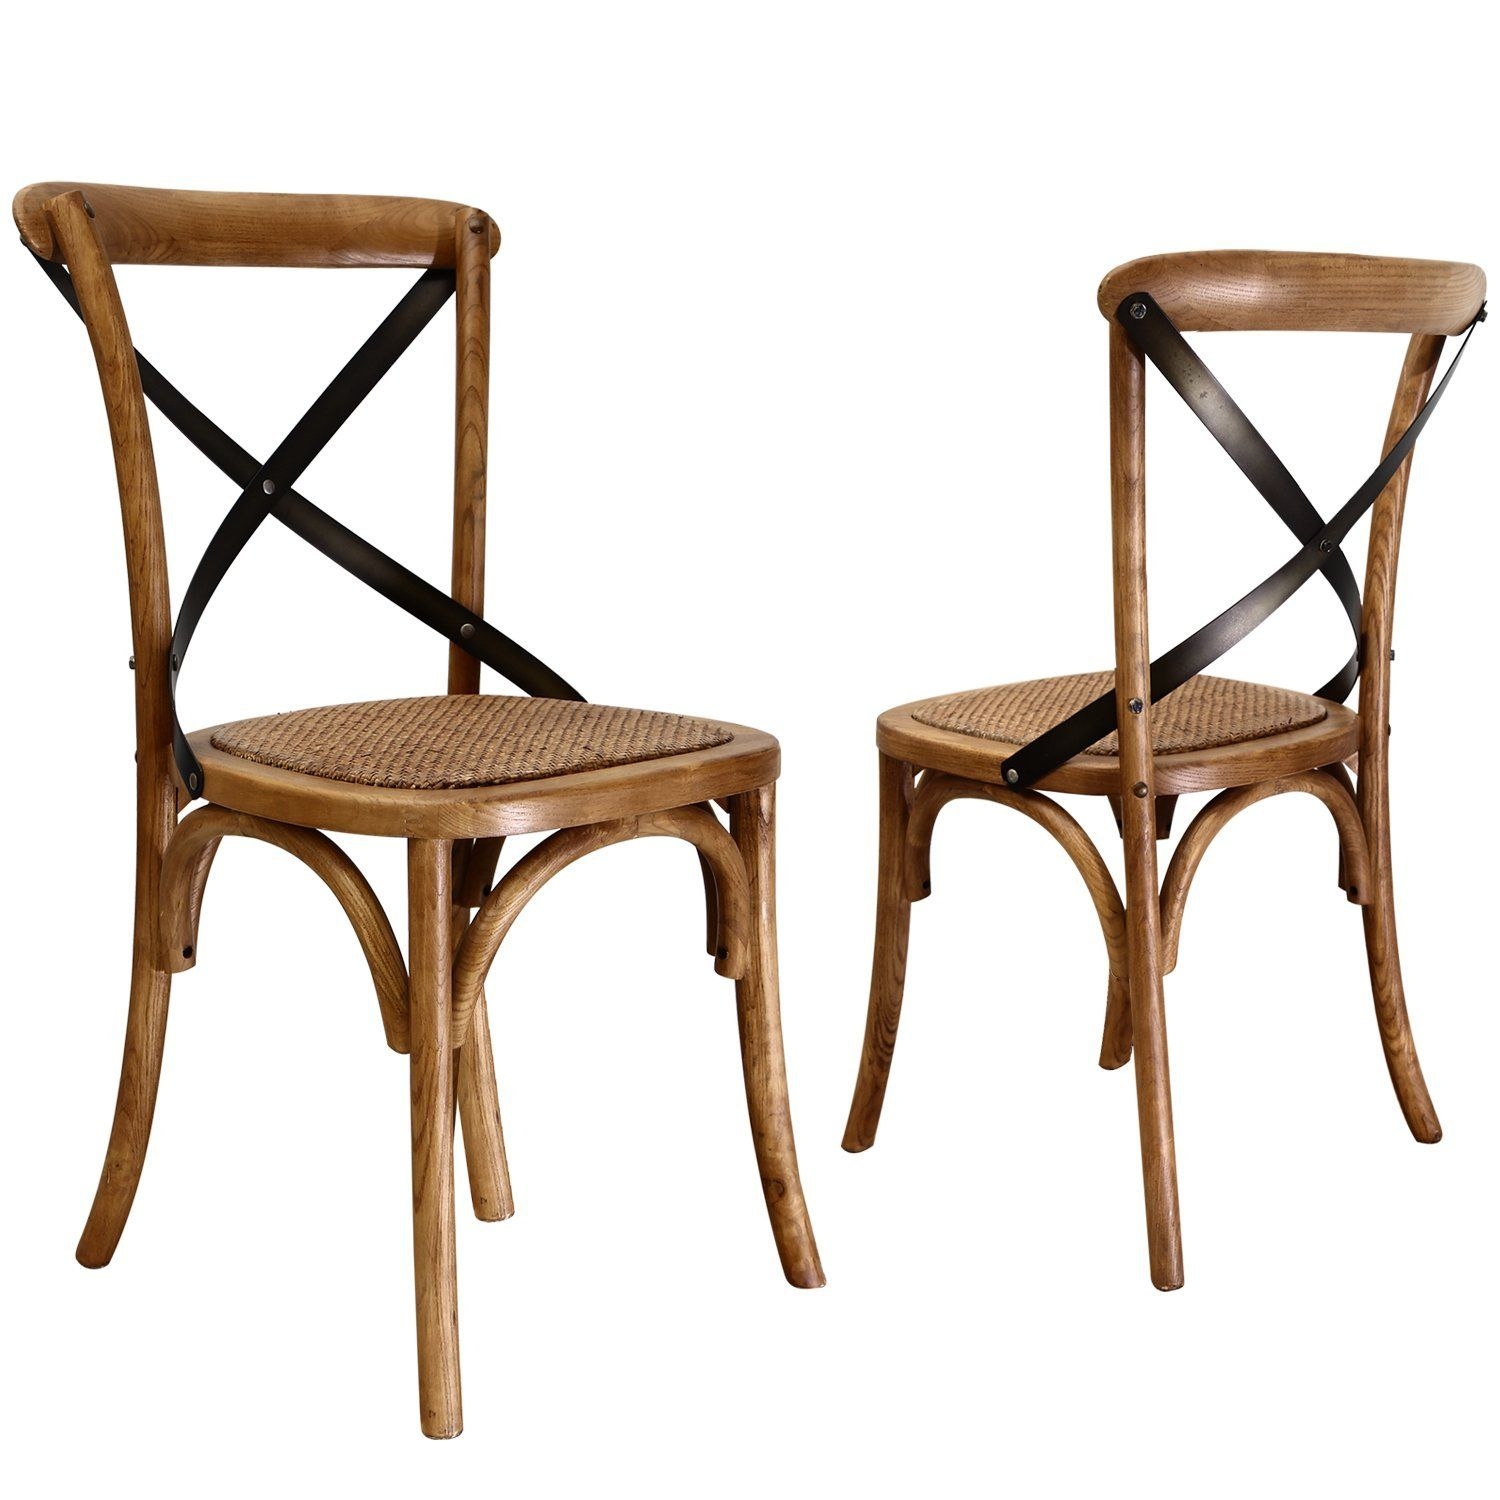 x back dining chairs. Amazon.com - Joveco Antique Style X Back Solid Wood Dining Chair With Soft Rattan Chairs N